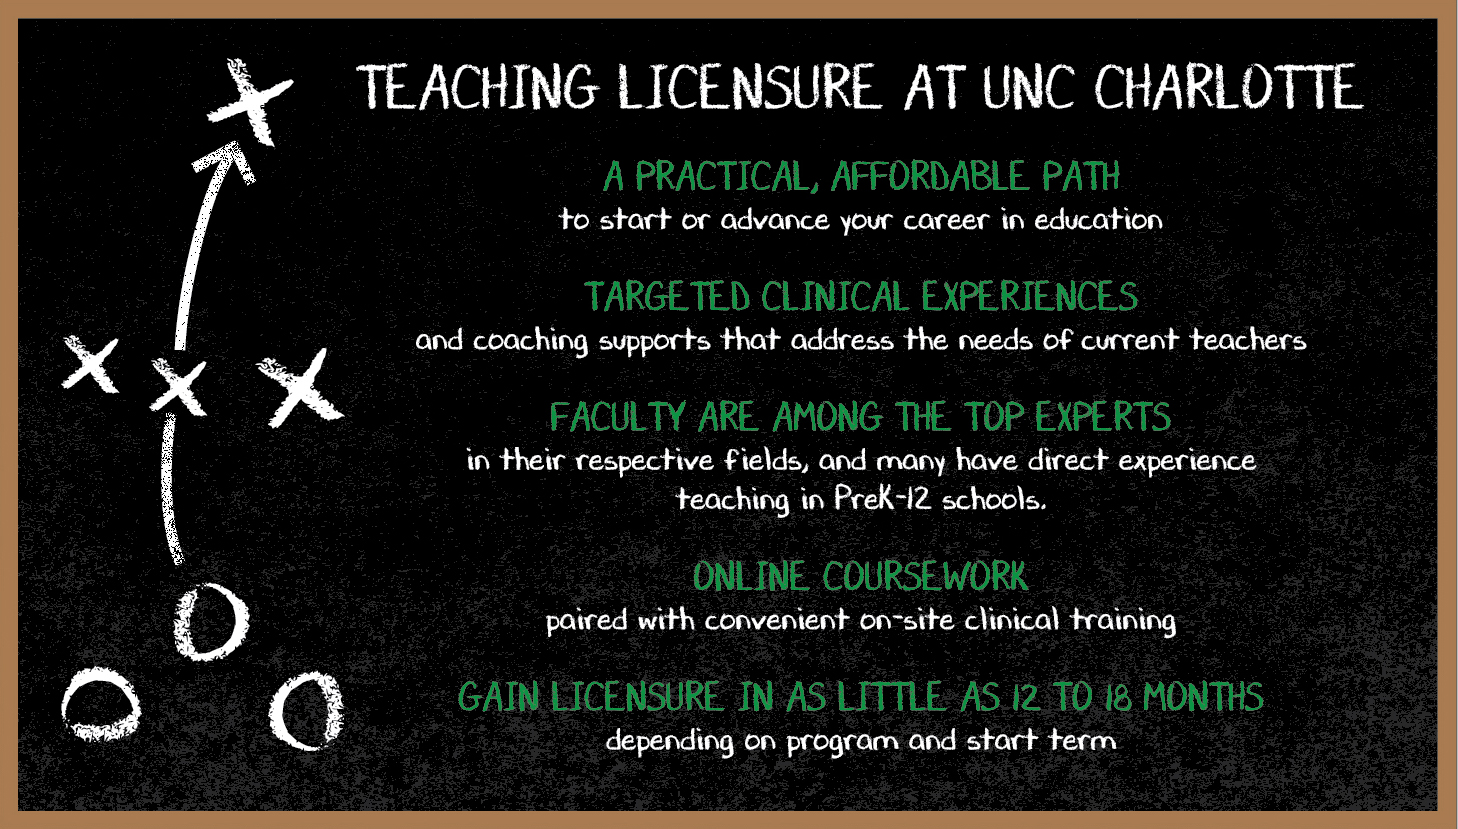 teaching licensure at UNC Charlotte